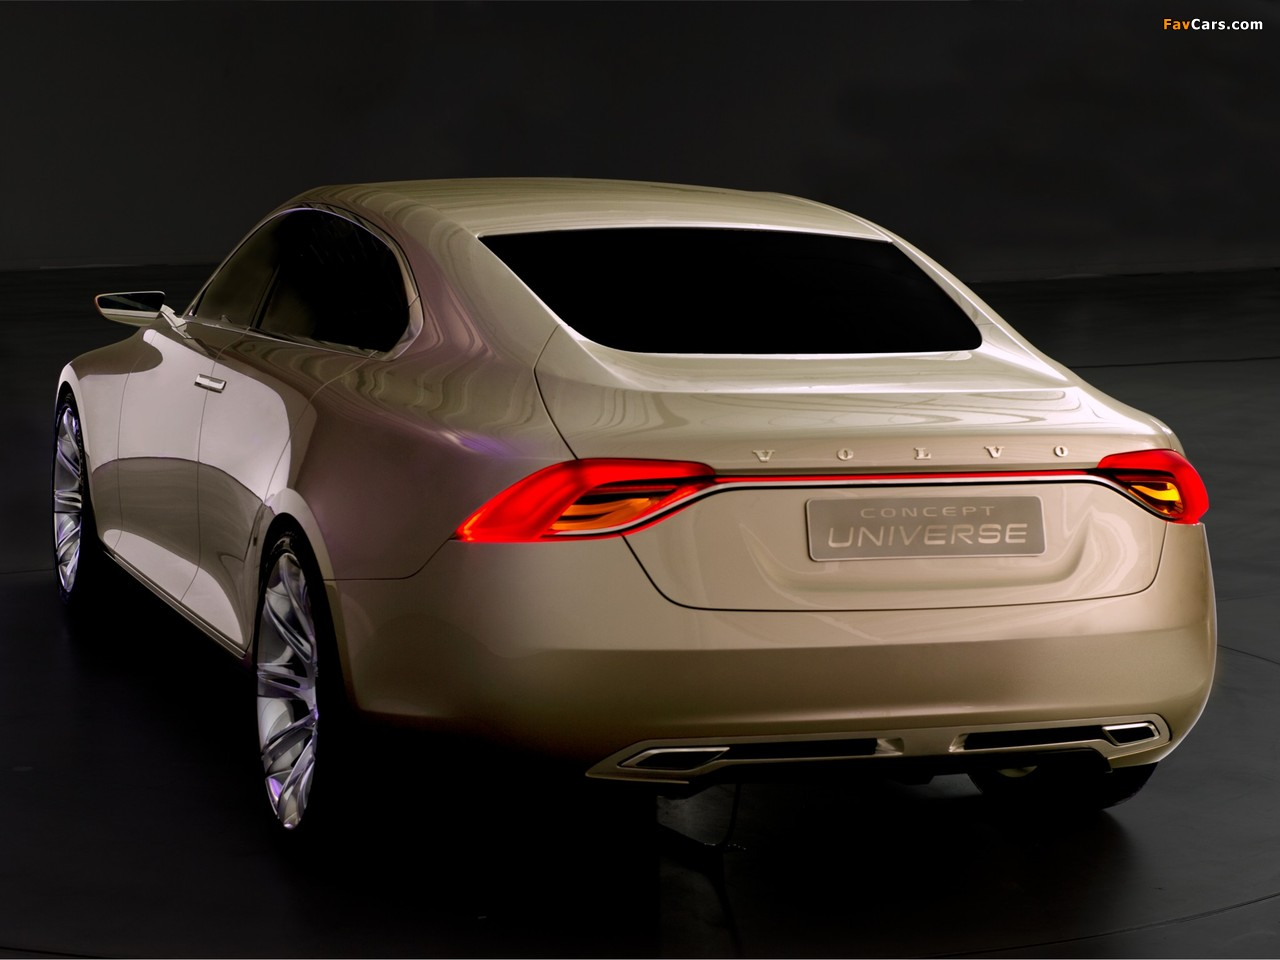 Volvo Universe Concept 2011 wallpapers (1280 x 960)